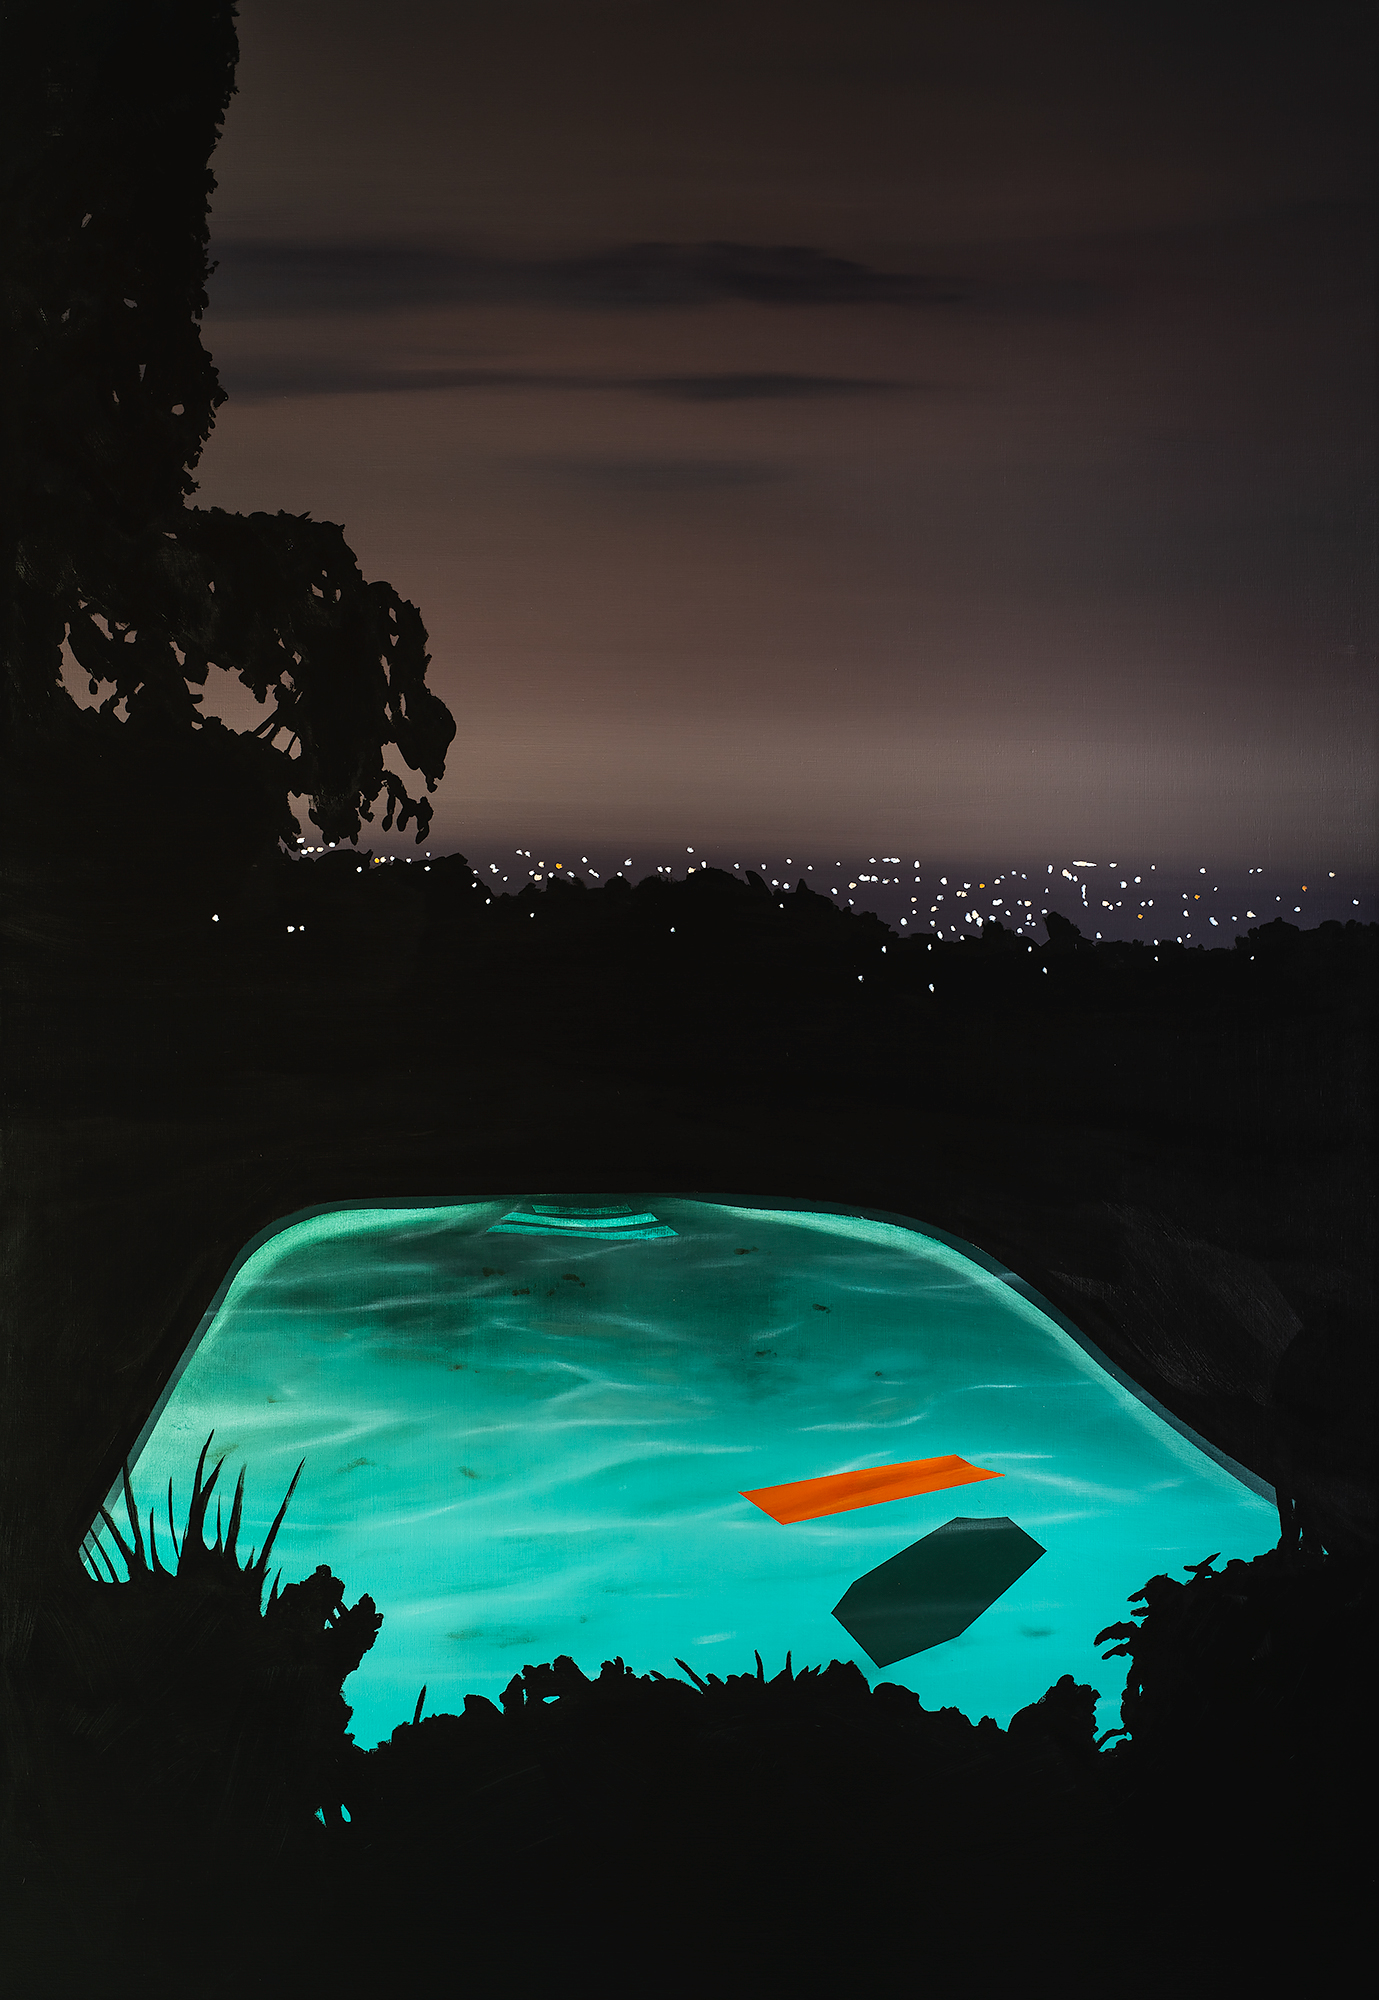 'Pool with Orange Float, 110 x 160cm, Acrylic and Acrylic Ink on Linen, 2019-2000px.jpg